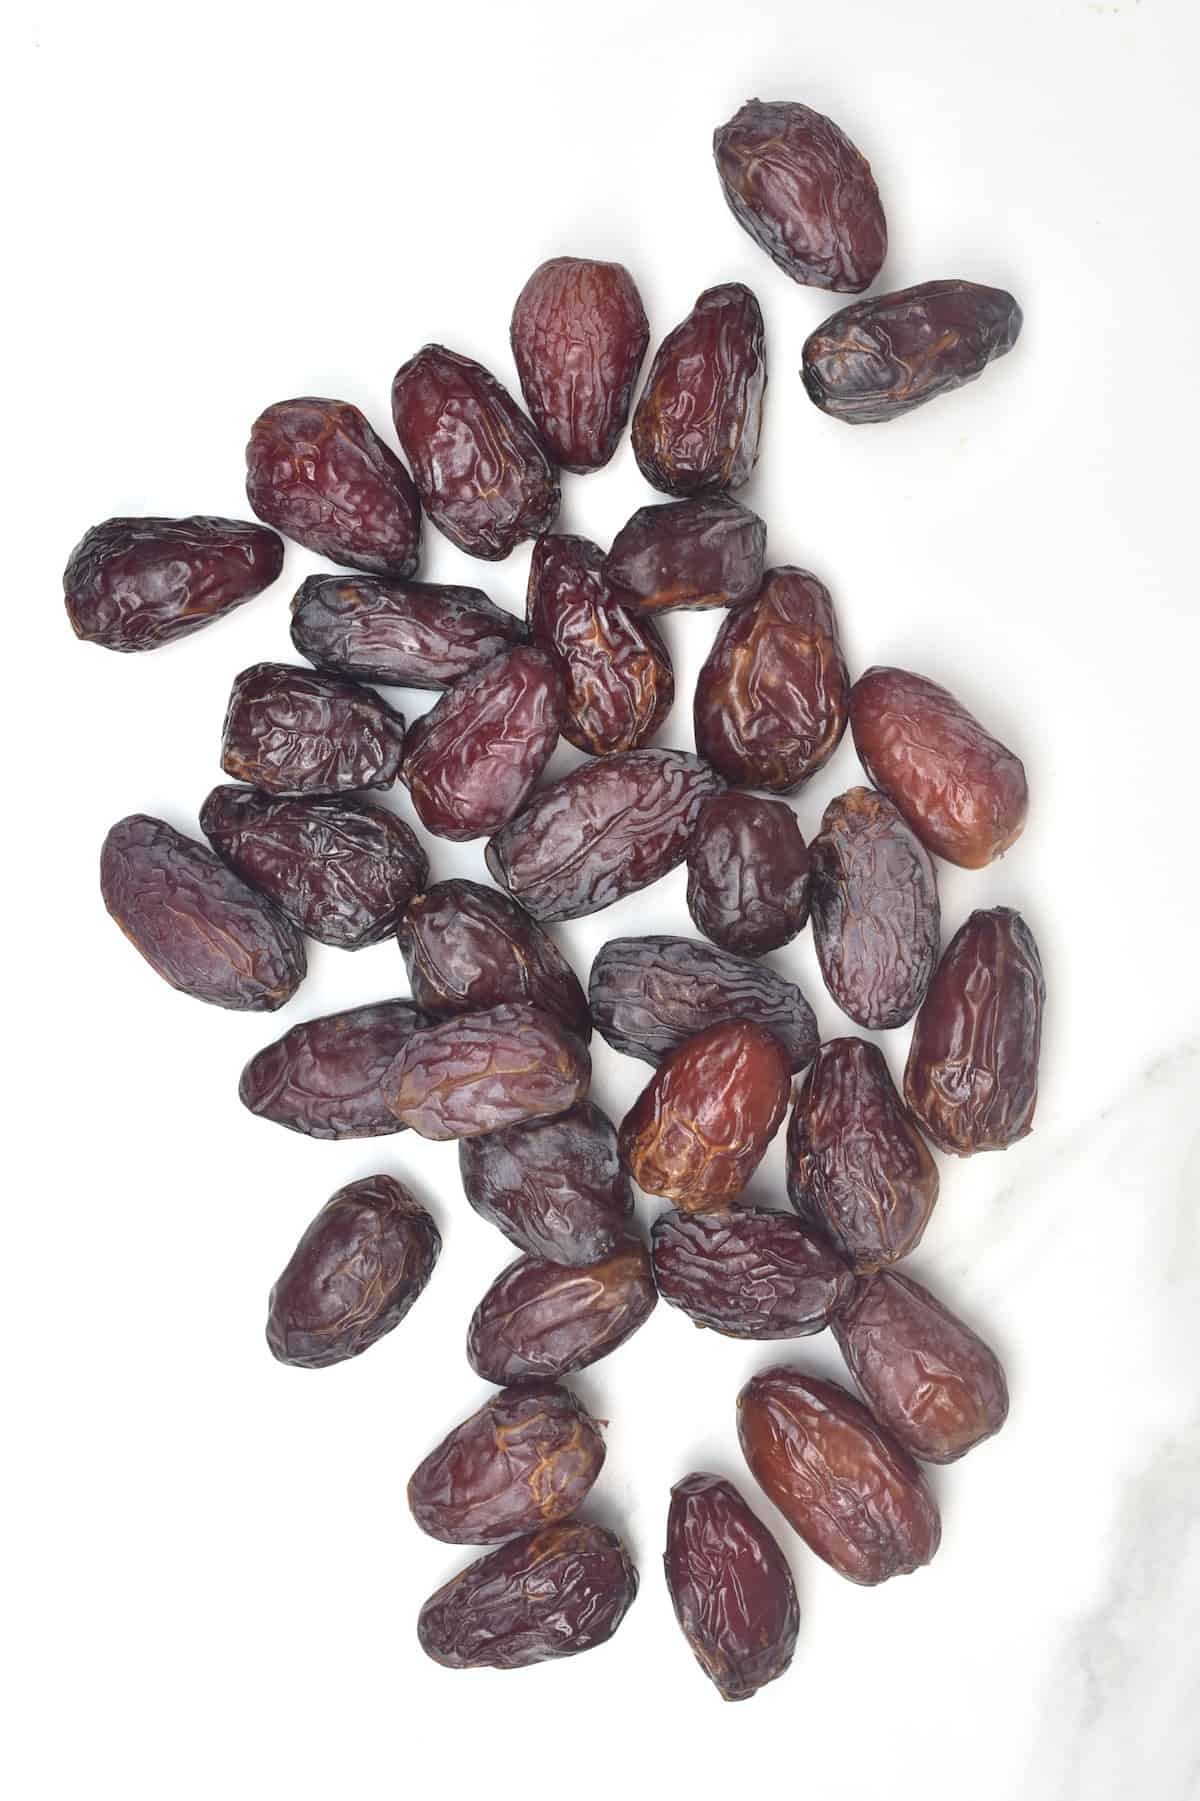 Dates on a flat surface